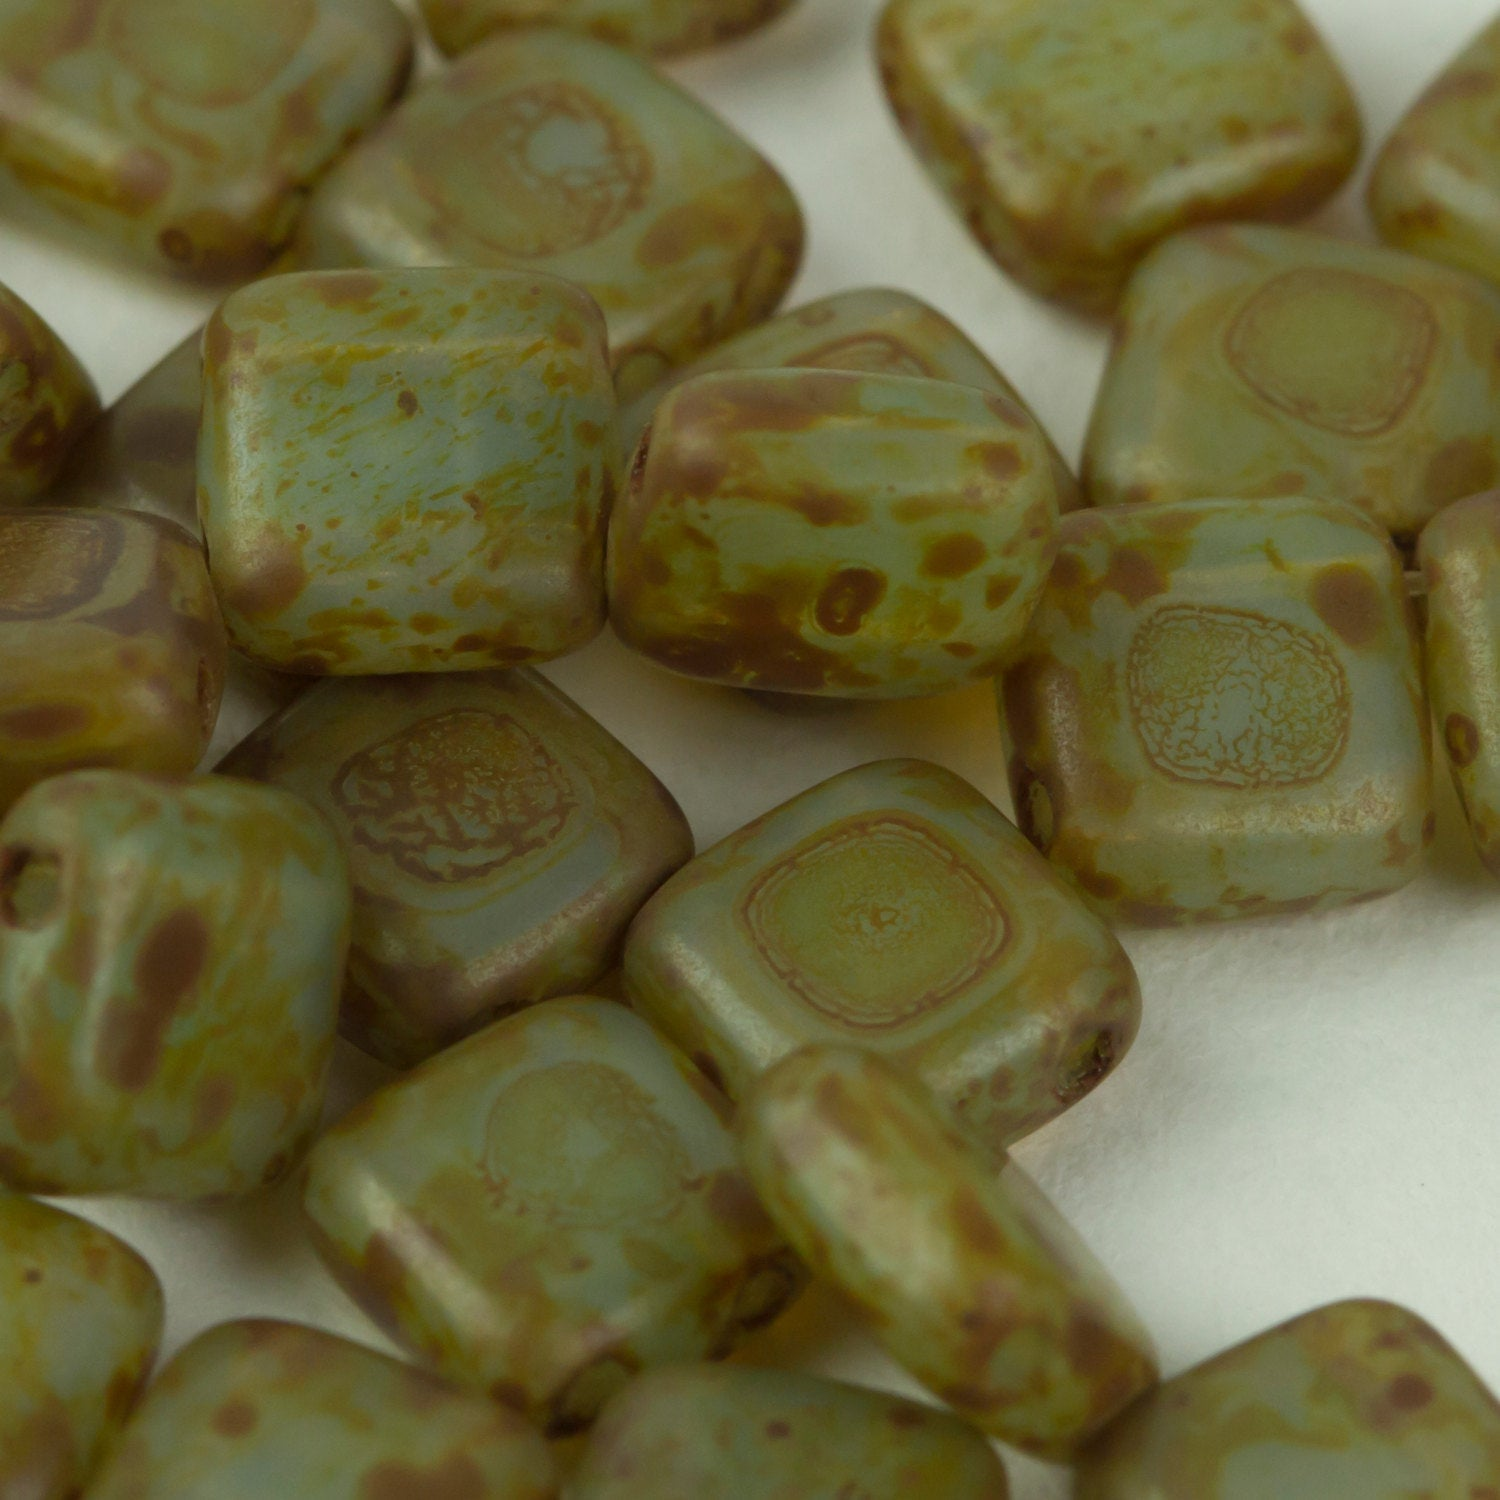 Beads, Two Hole Czech Glass 6mm Tile Bead in Aqua Travertine 25 pcs